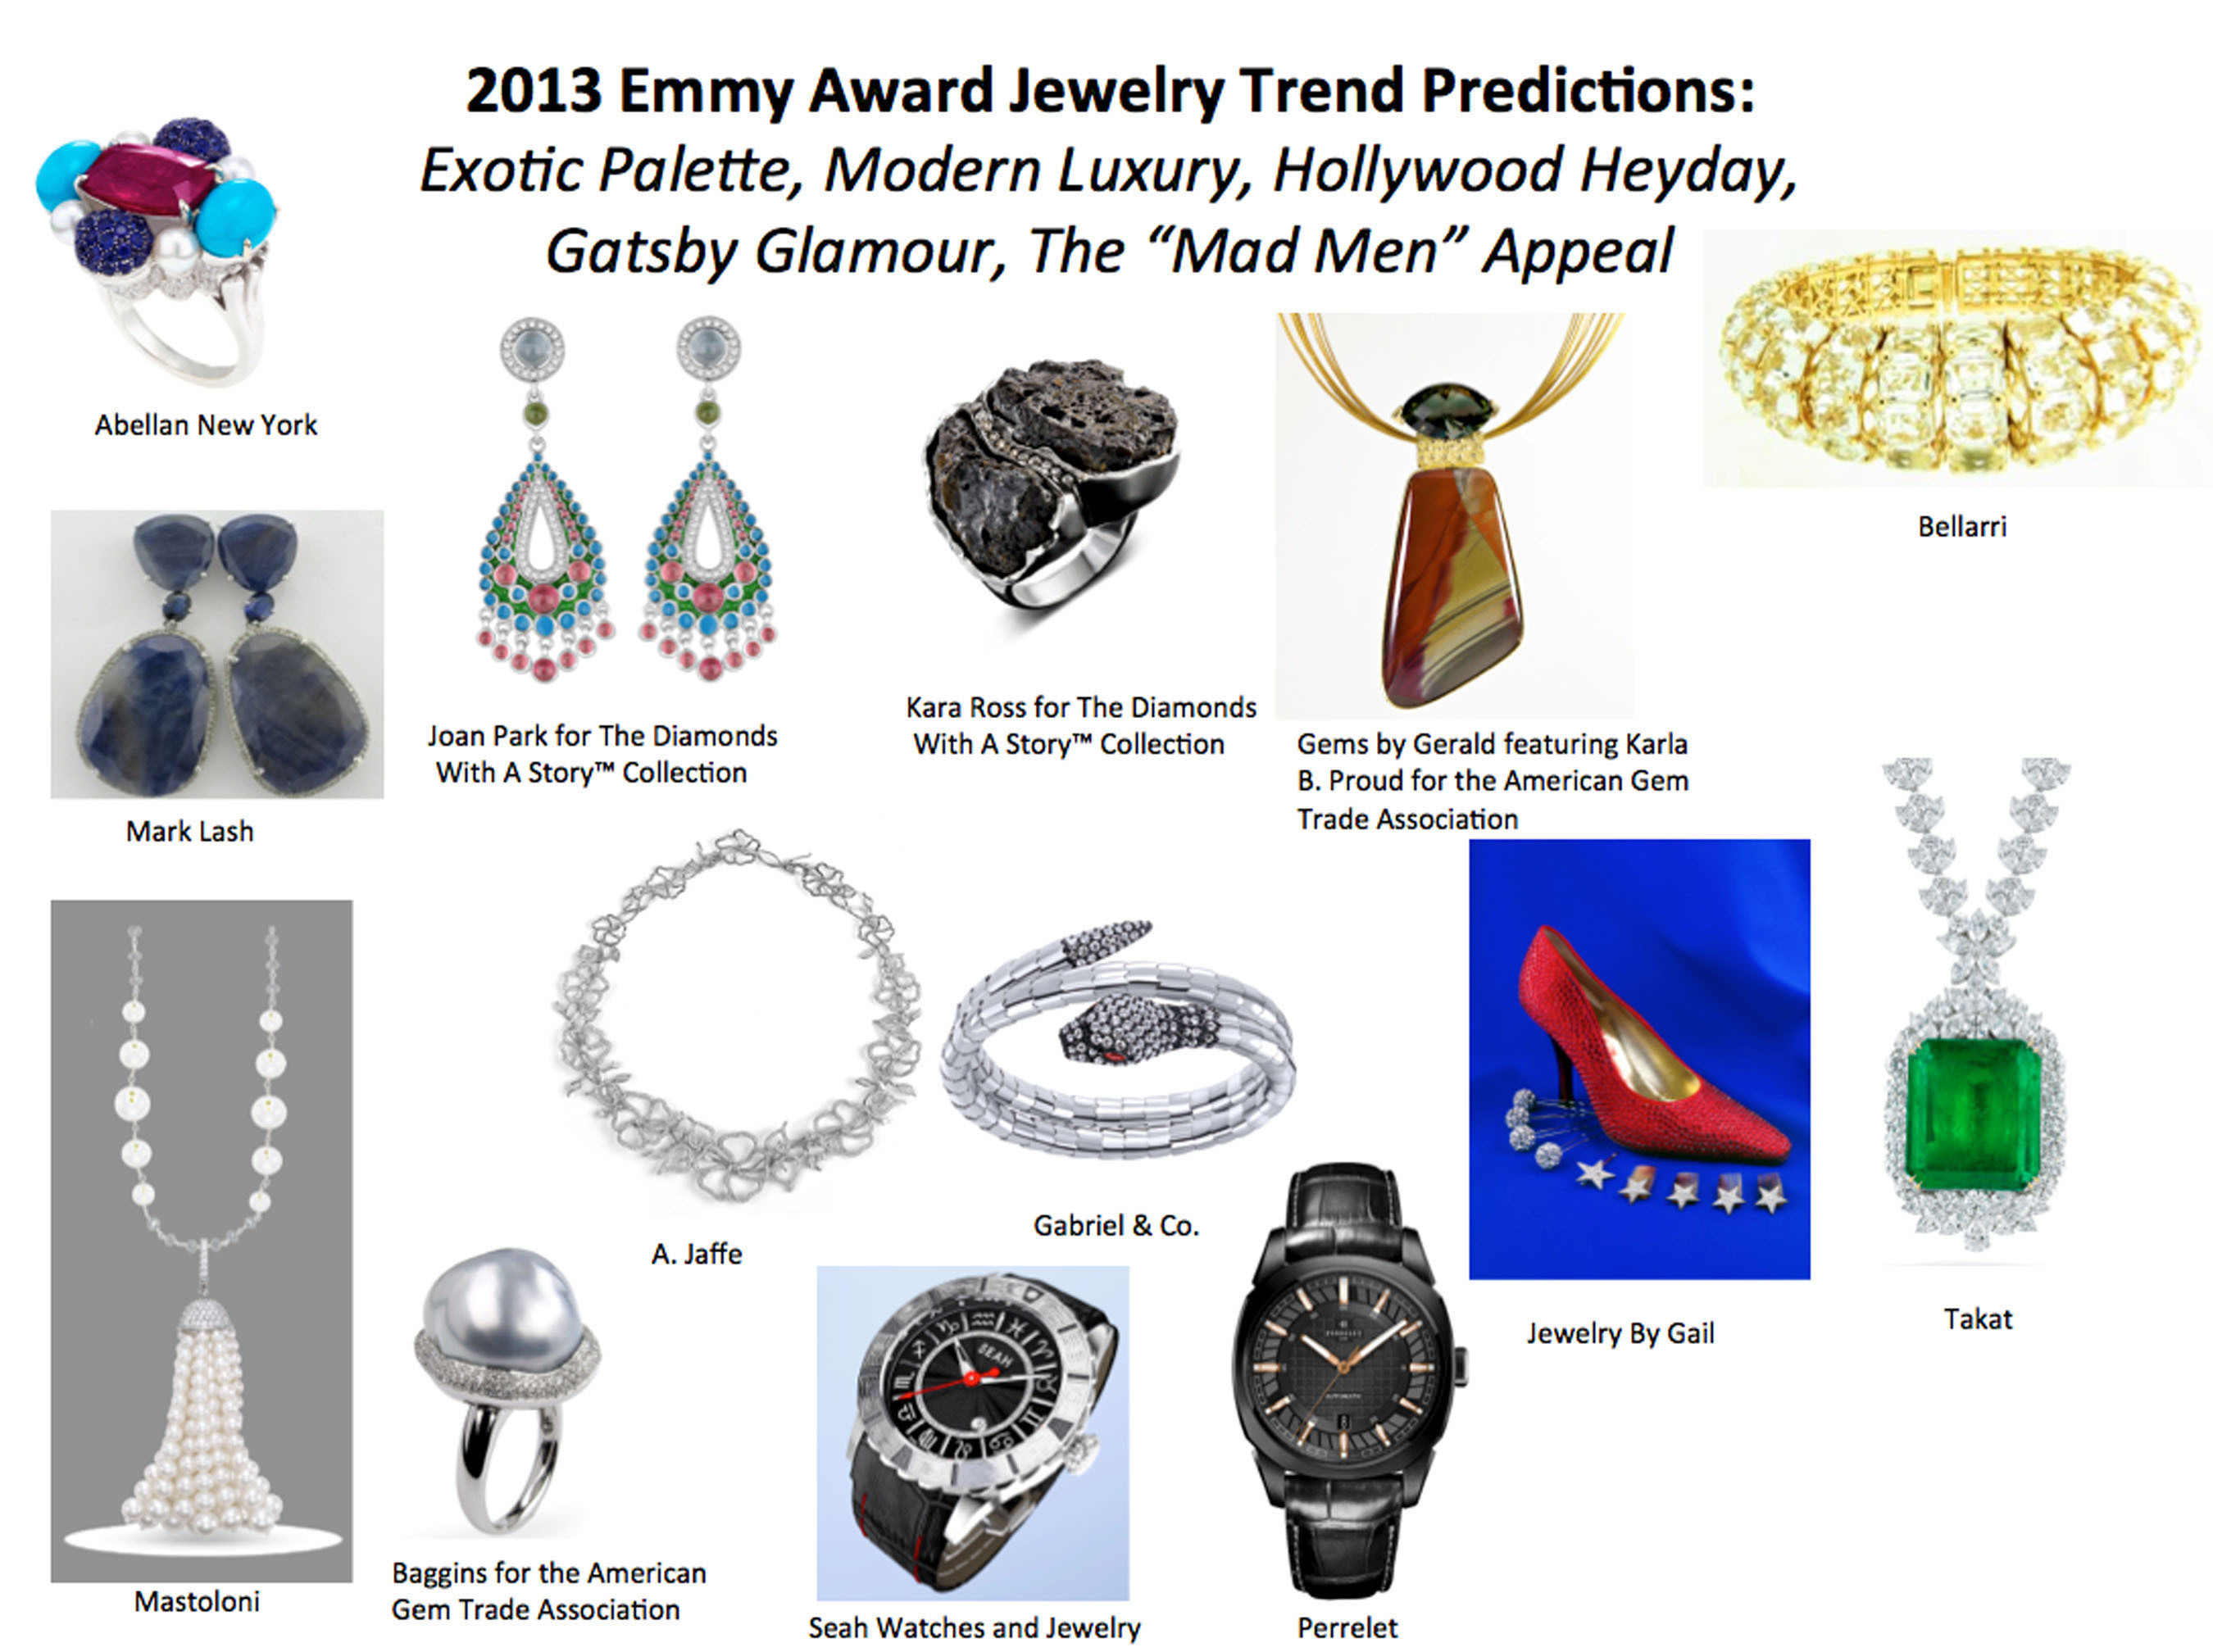 Emmy Awards Jewelry Trend Predictions From Leading Style Expert.  (PRNewsFoto/StyleLab)